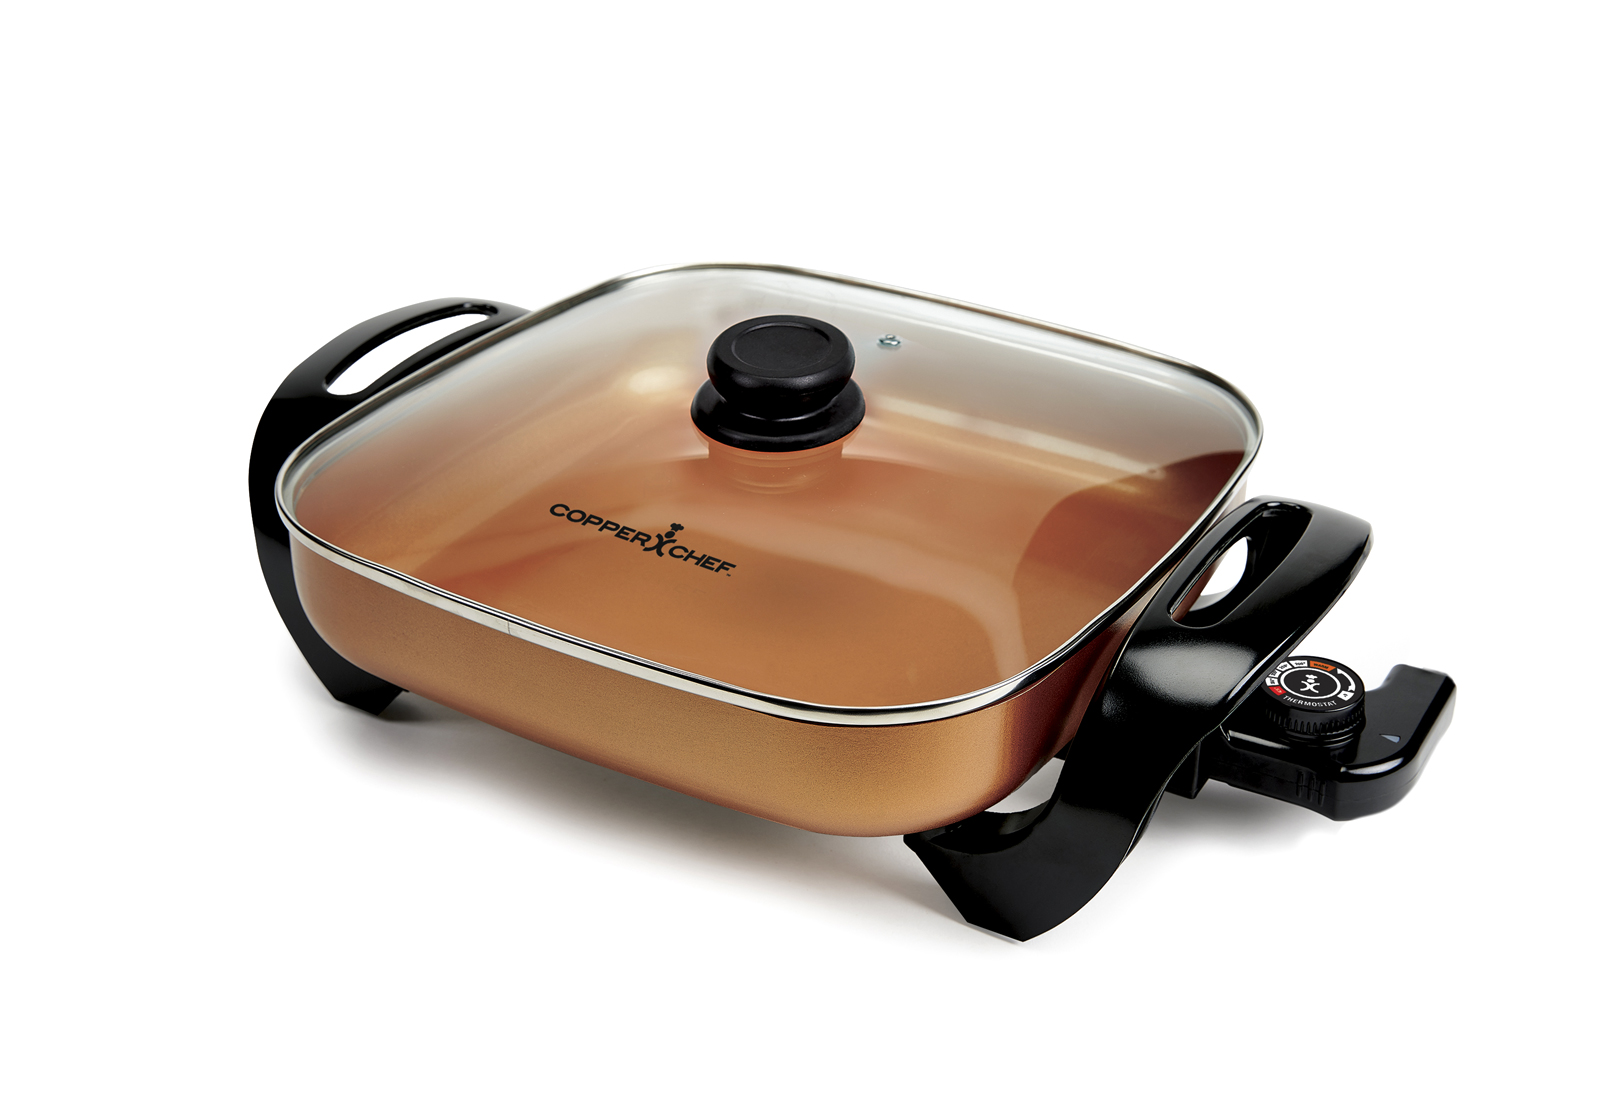 Copper Chef Electric Skillet Product Image